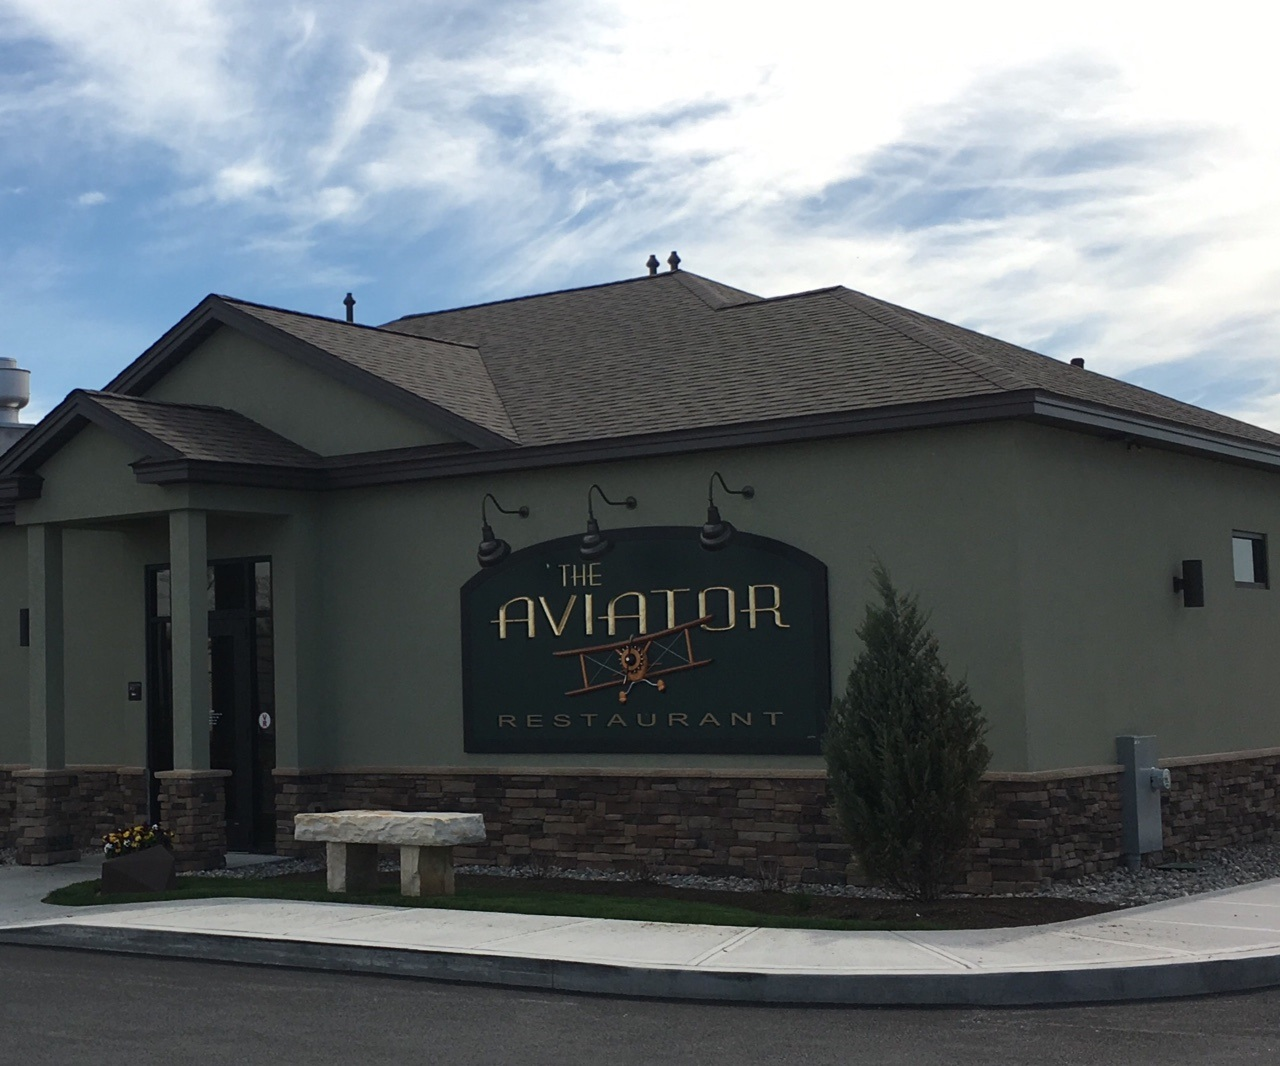 The Aviator Restaurant Grand Opening 05 11 16